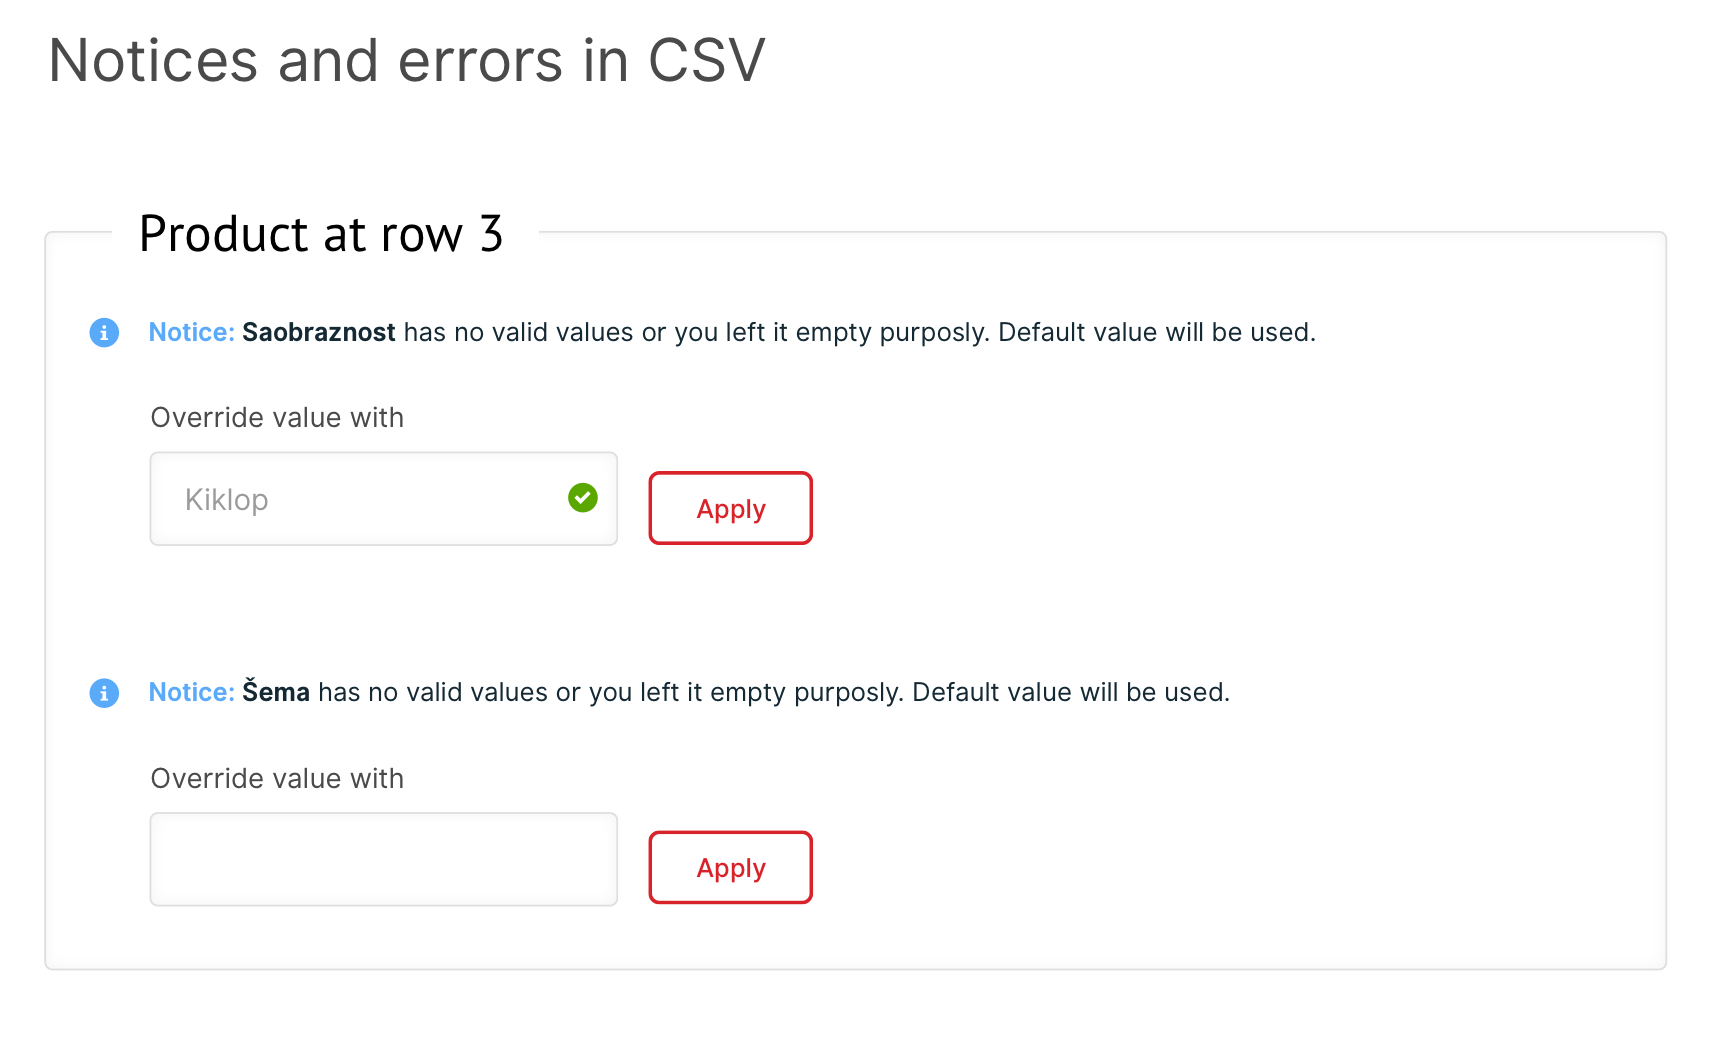 Notices and errors about specific products. You can override values directly here